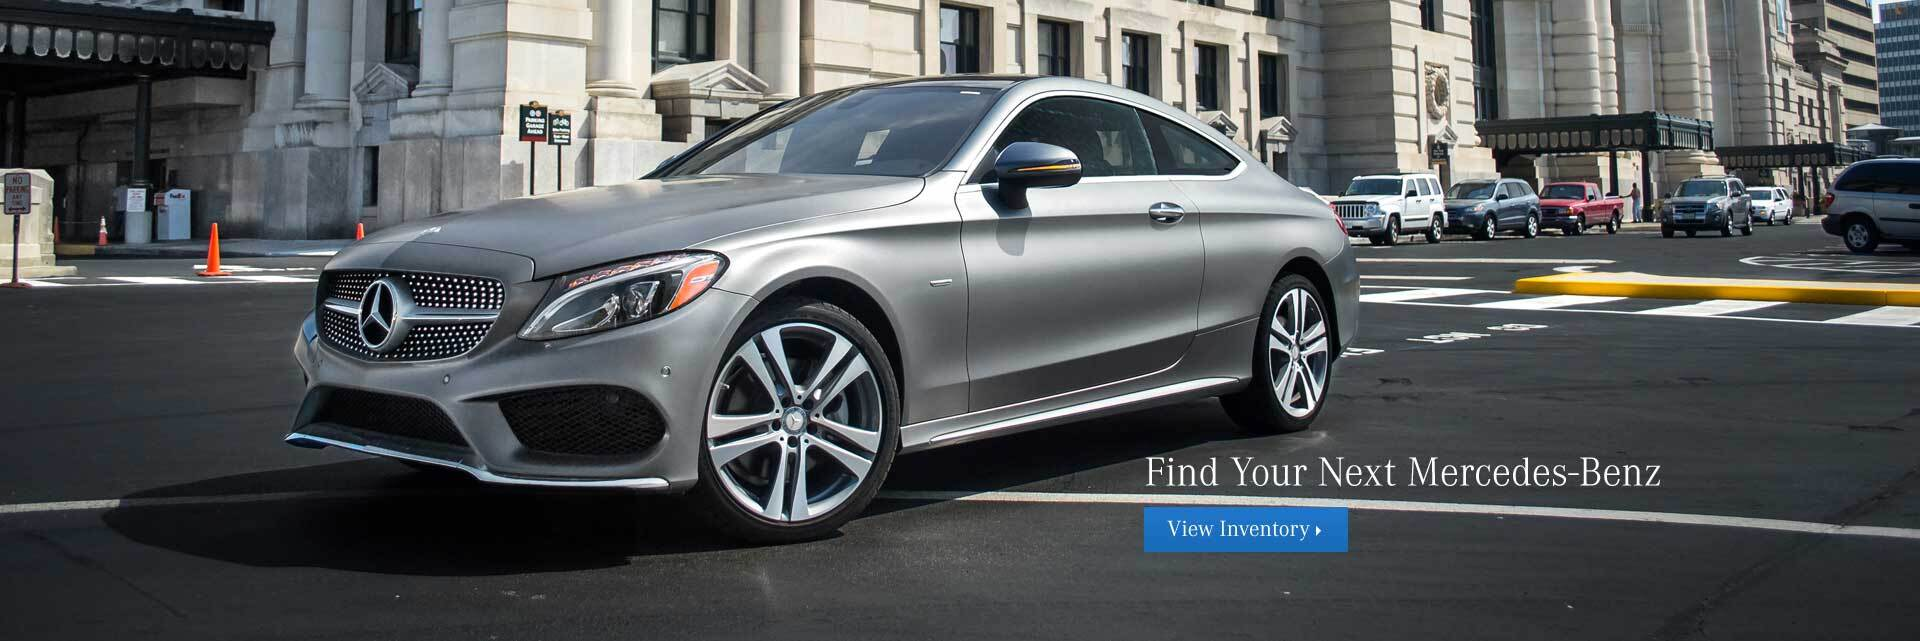 mercedes benz dealership kansas city mo used cars